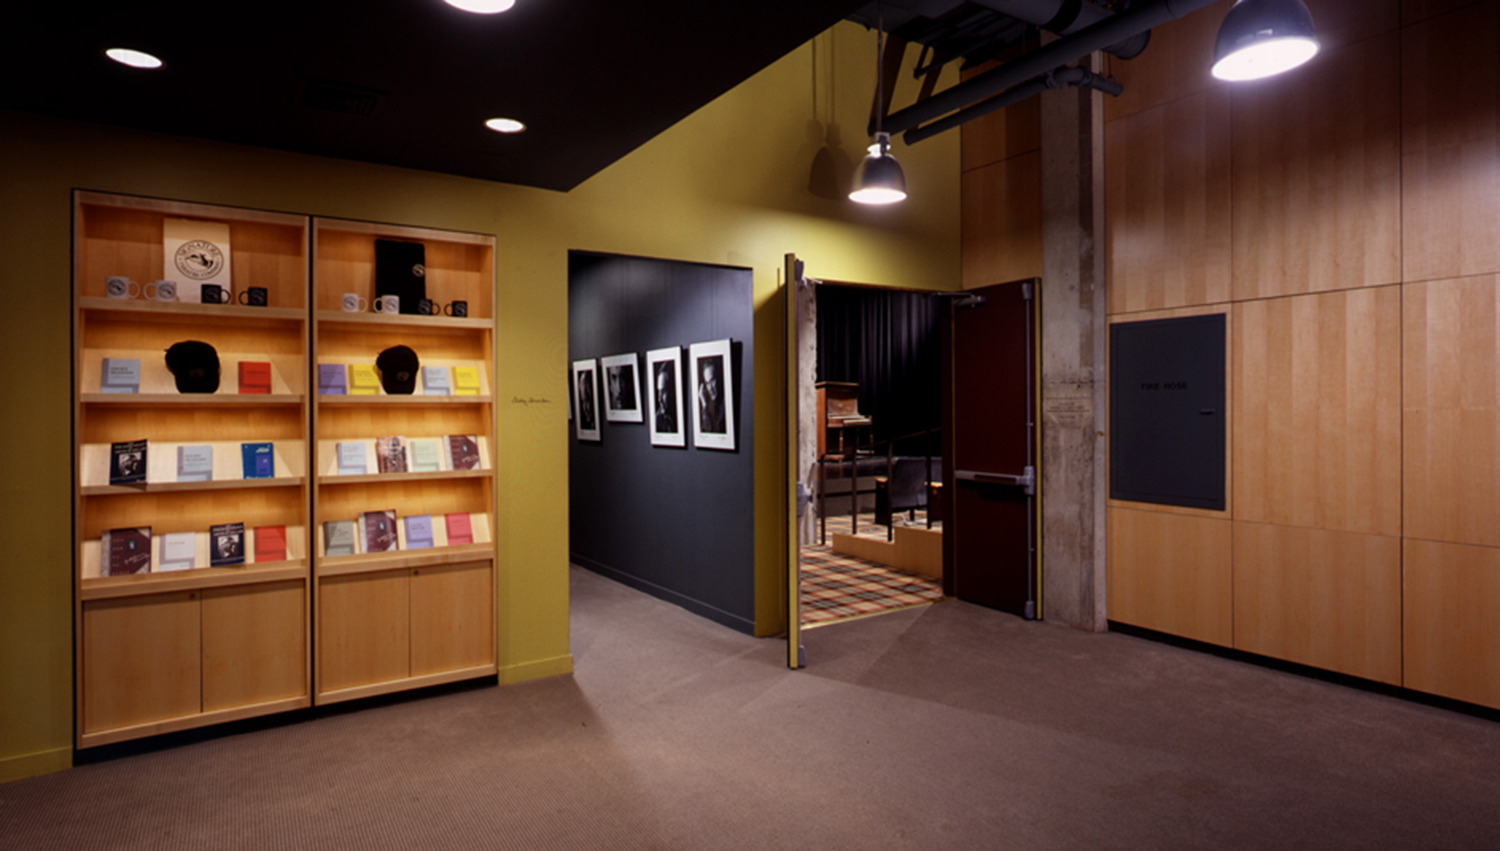 Lobby with view of bookcase and access to theater